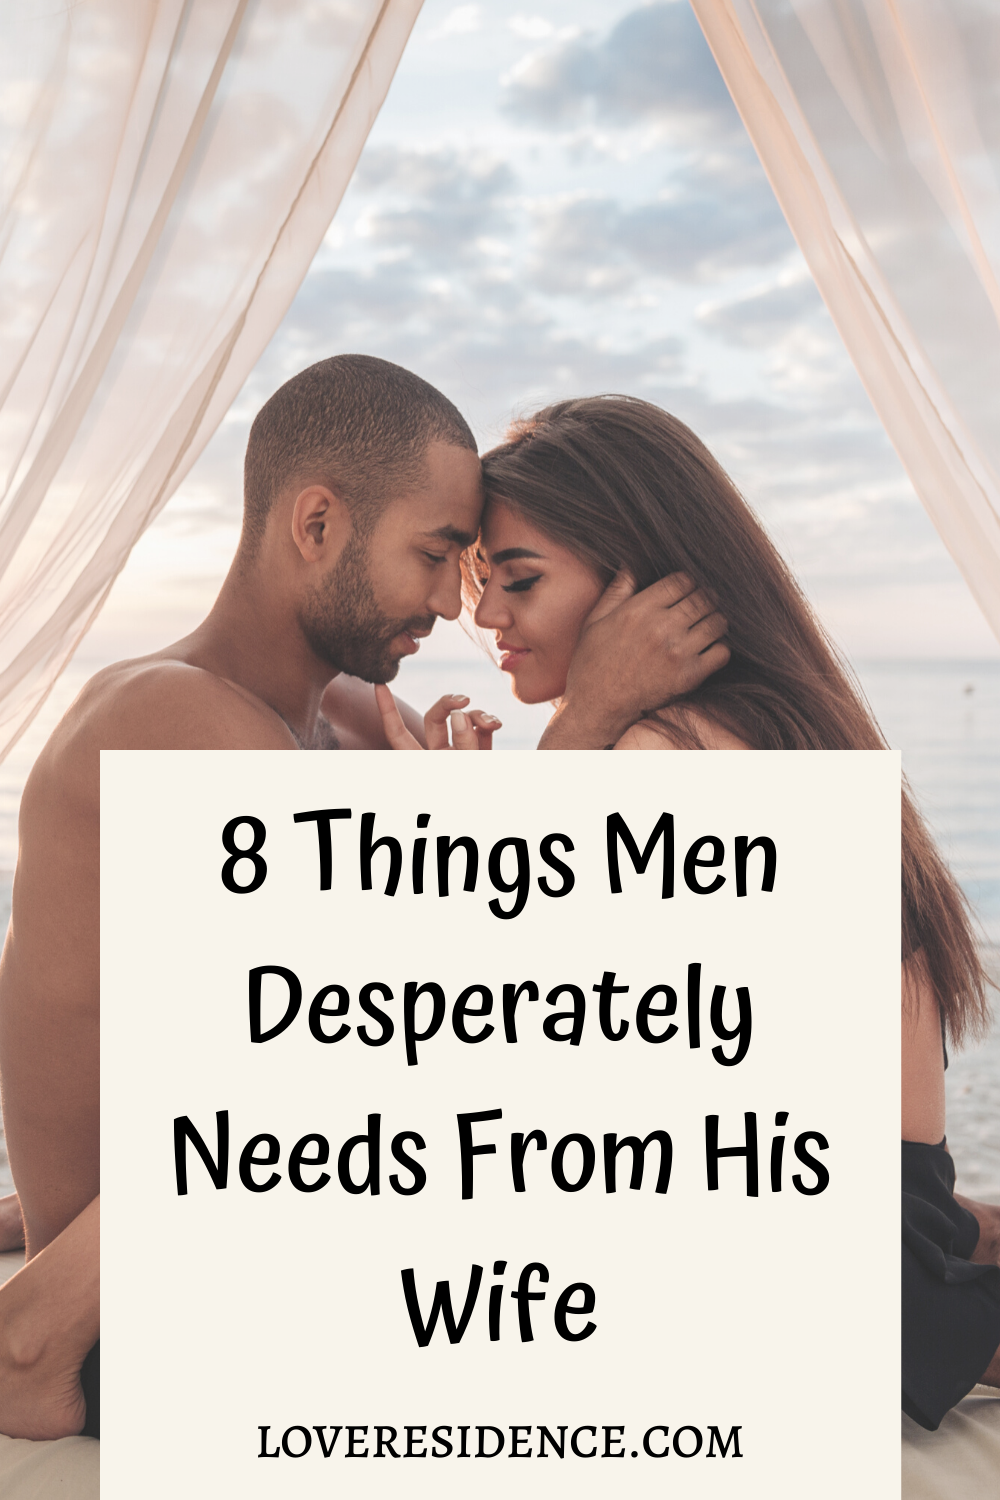 8 Things Men Desperately Needs From His Wife in 2020